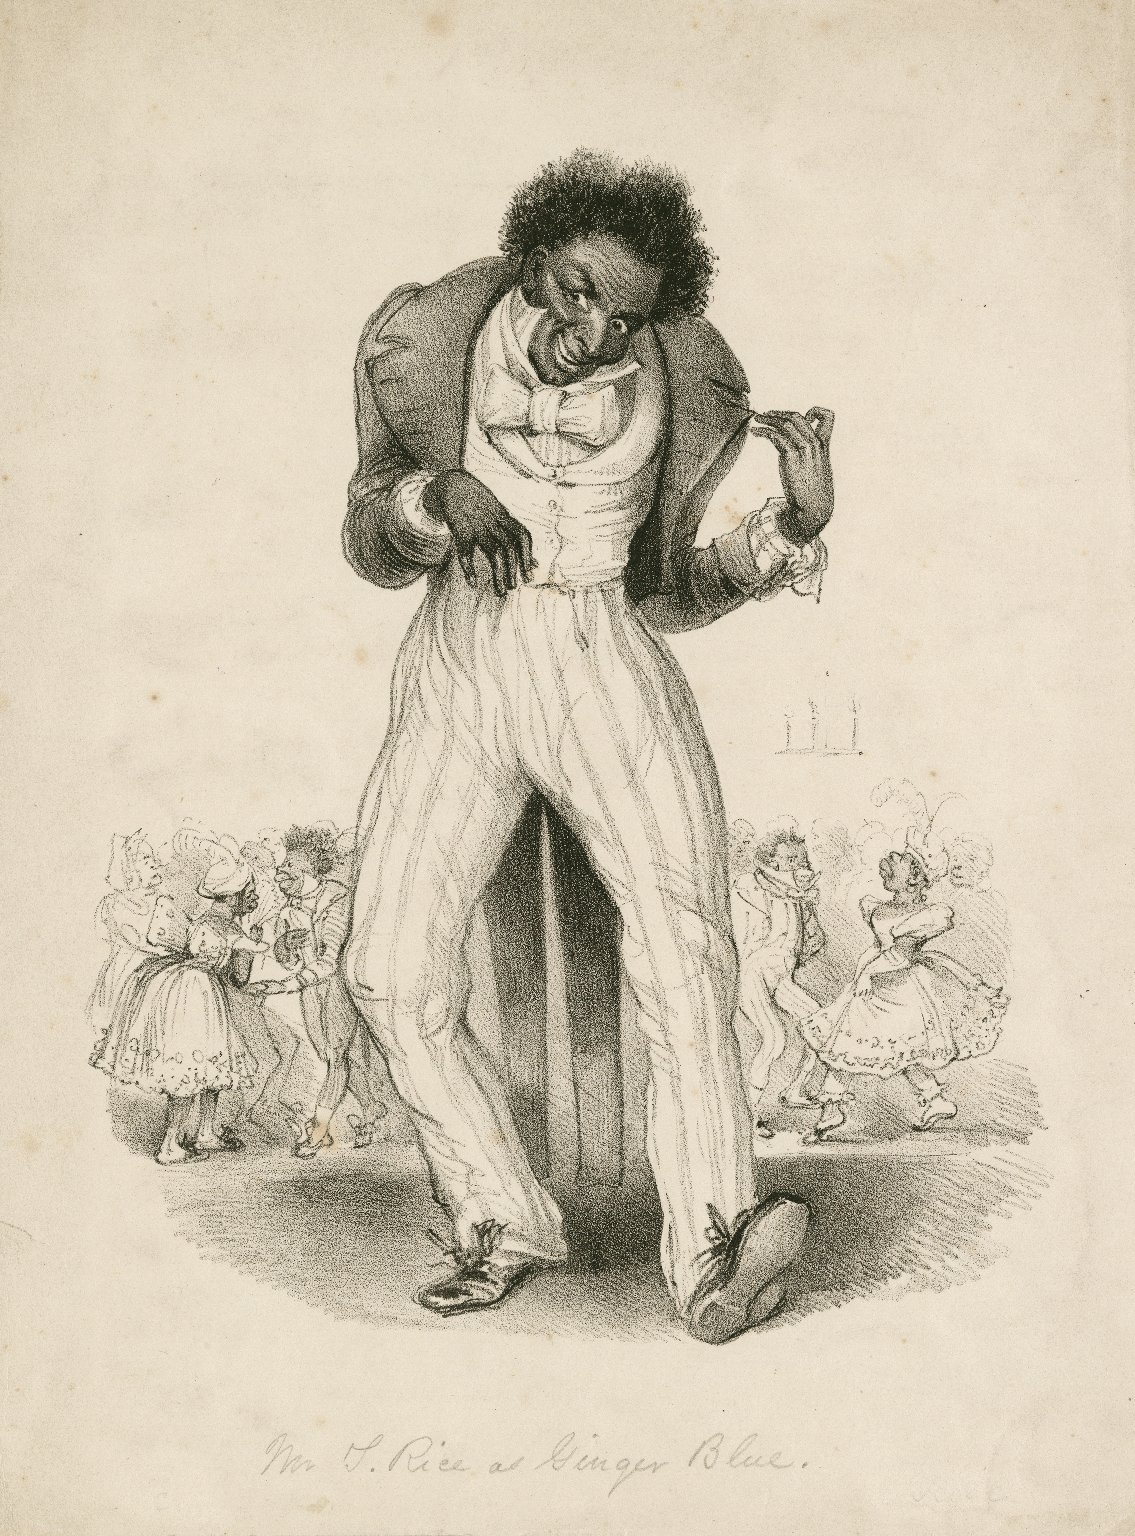 <b>Ginger Blue</b>     	</br>Playwright/Actor Thomas Rice as Ginger Blue in The Virginia Mummy, 19th century</br><br/><b>Source: </b><i>Mr. T. Rice as Ginger Blue (Call number: ART File R497.6 no.1), [19th century], Folger Digital Image Collection, University of Cincinnati Libraries Digital Collections, University of Cincinnati, http://digproj.libraries.uc.edu:8180/luna/servlet/s/au32tc</i>